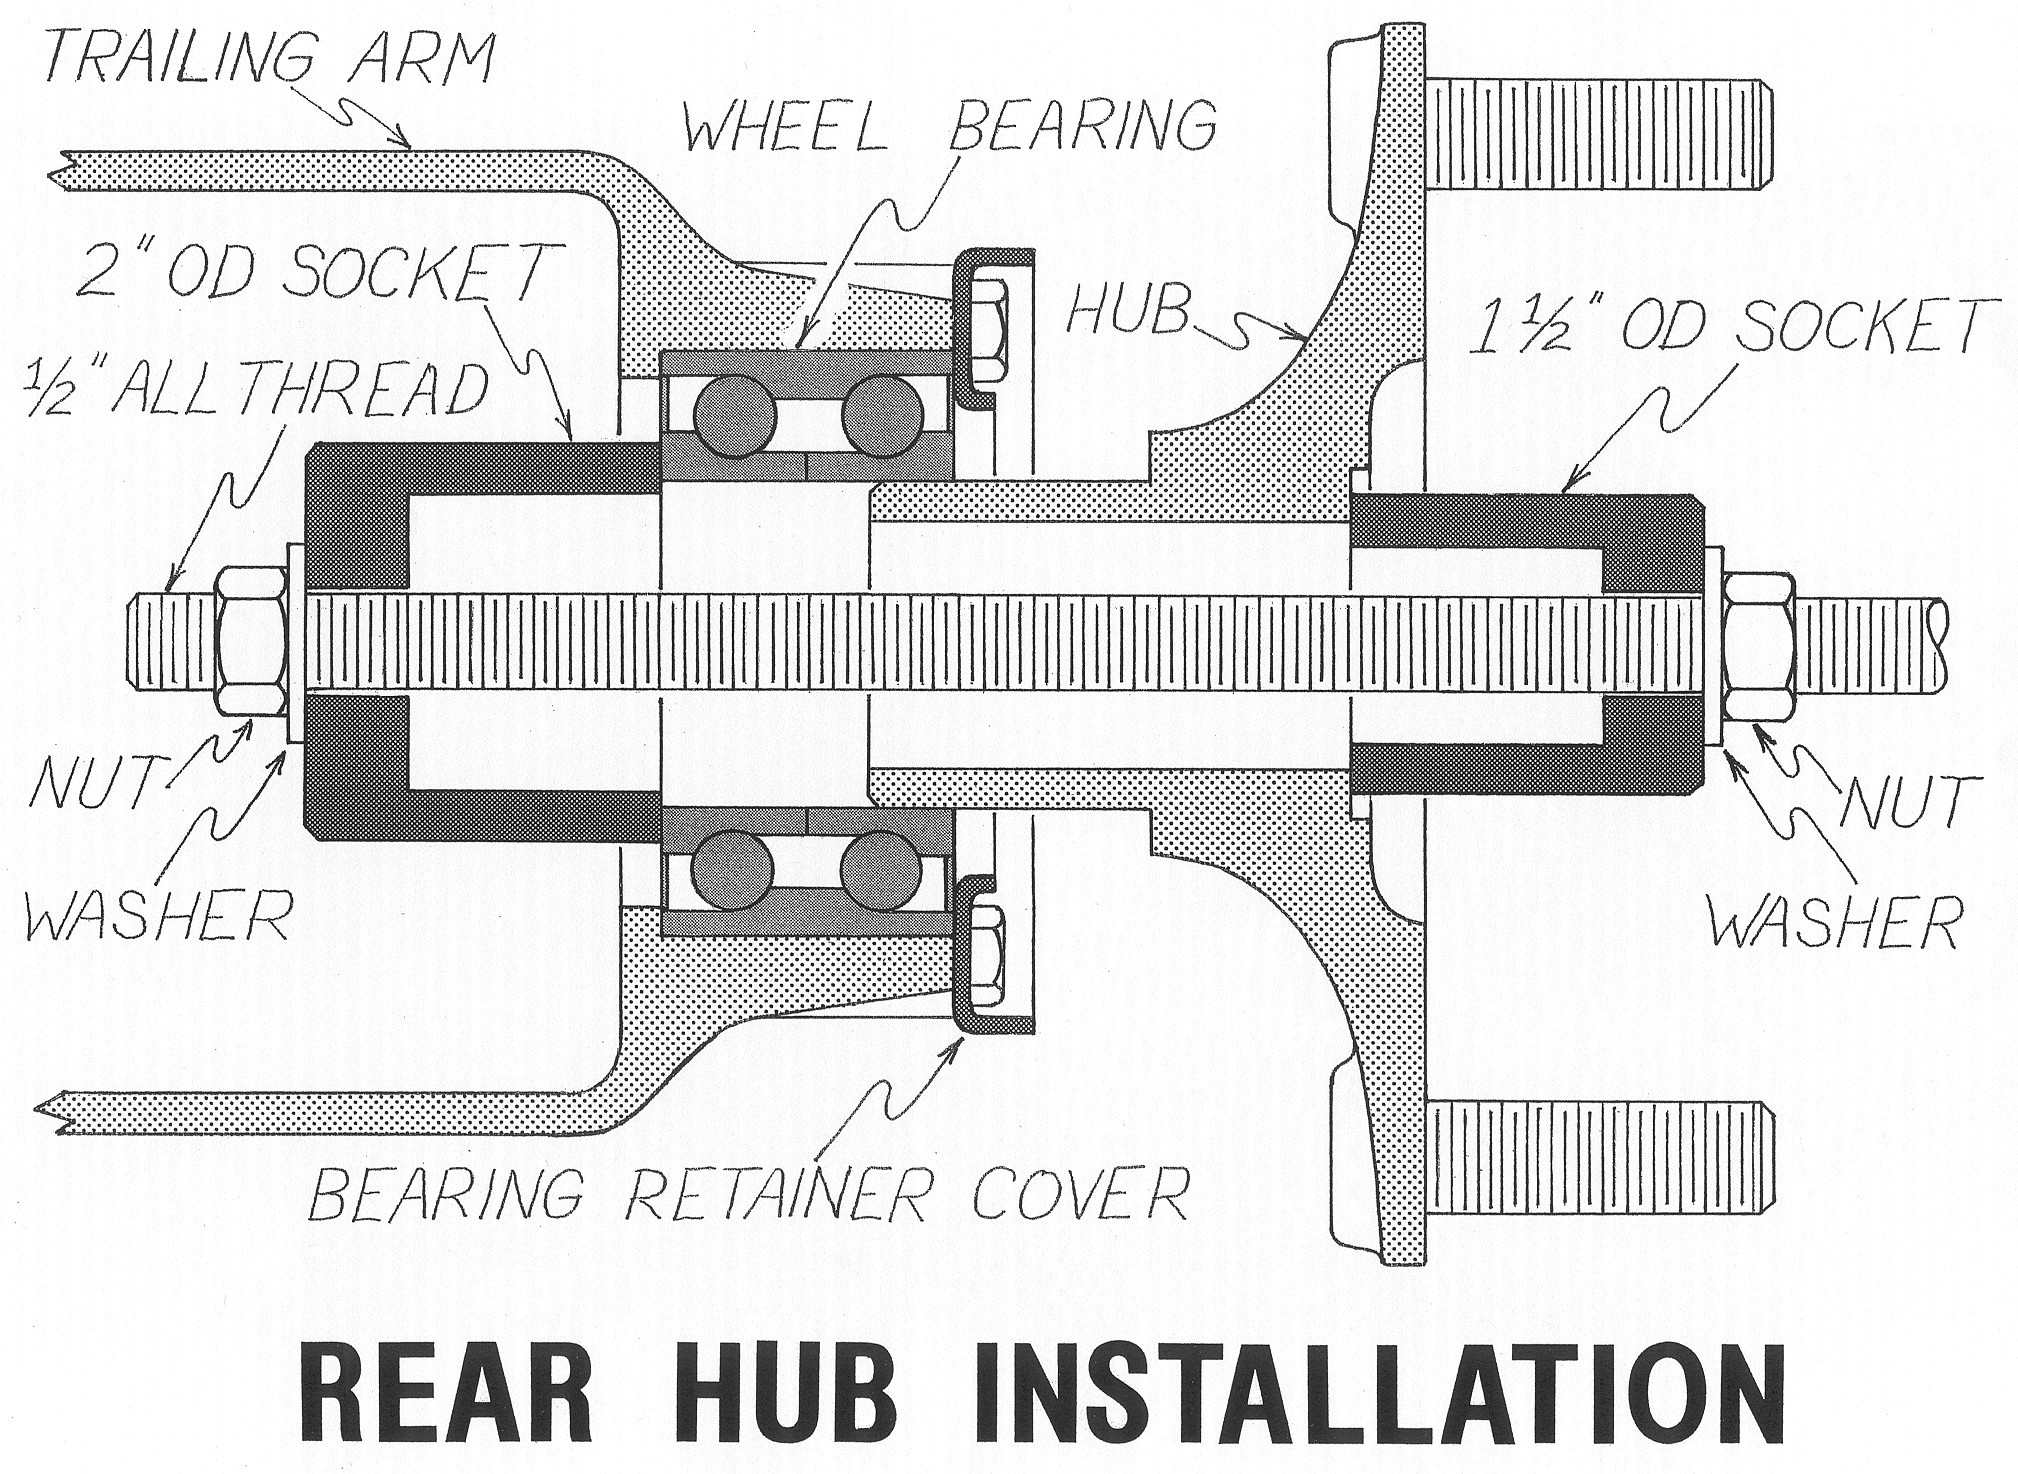 Wheel Bearing Assembly Diagram Woods O121q 1 Multi Spindle Cutter Hyundai Hd65 Wiring Related Post